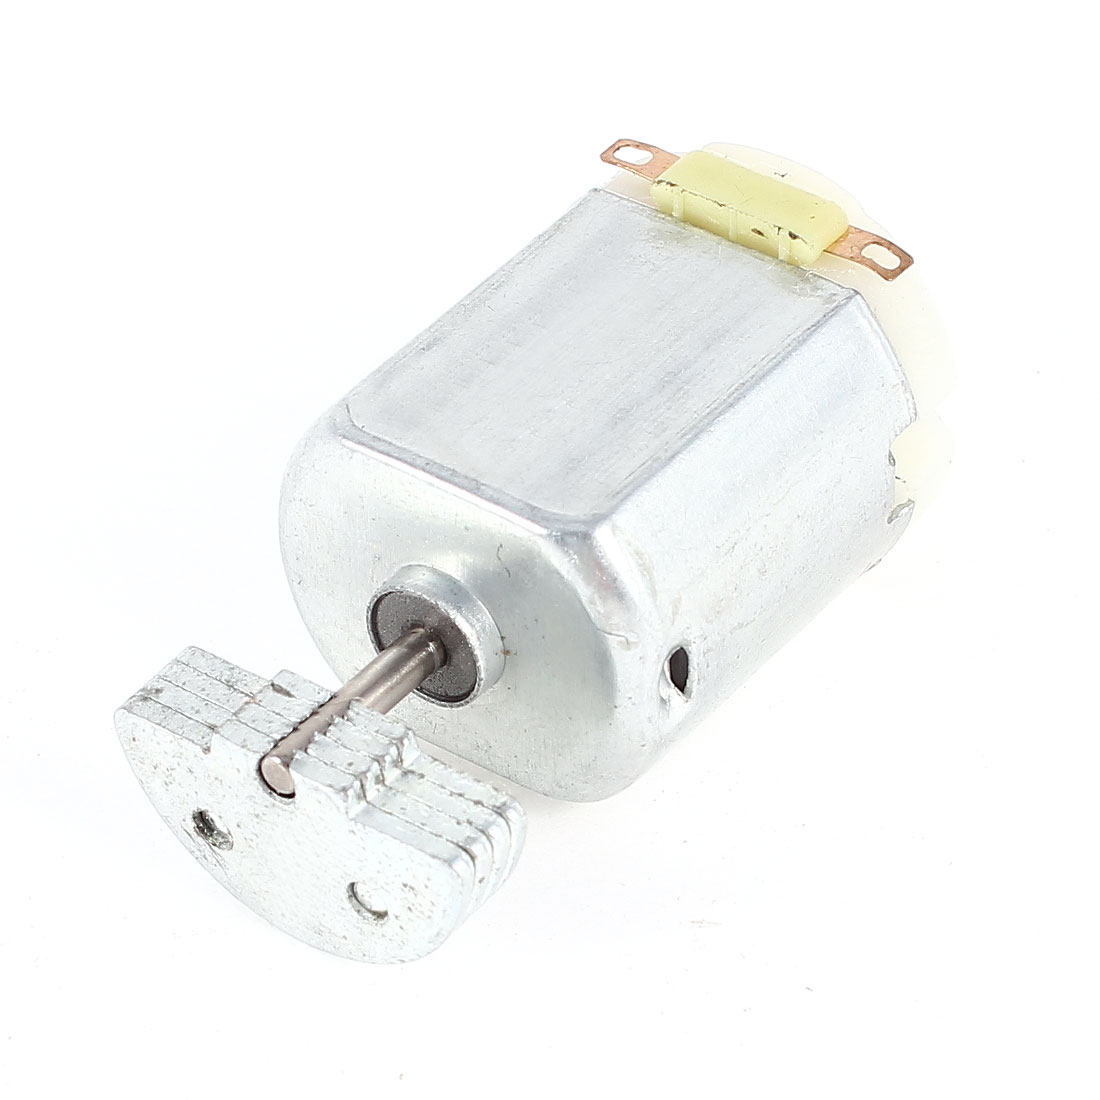 Mini-Vibration-Vibrating-Electric-Motor-DC-3V-5000RPM-for-Massager-Device